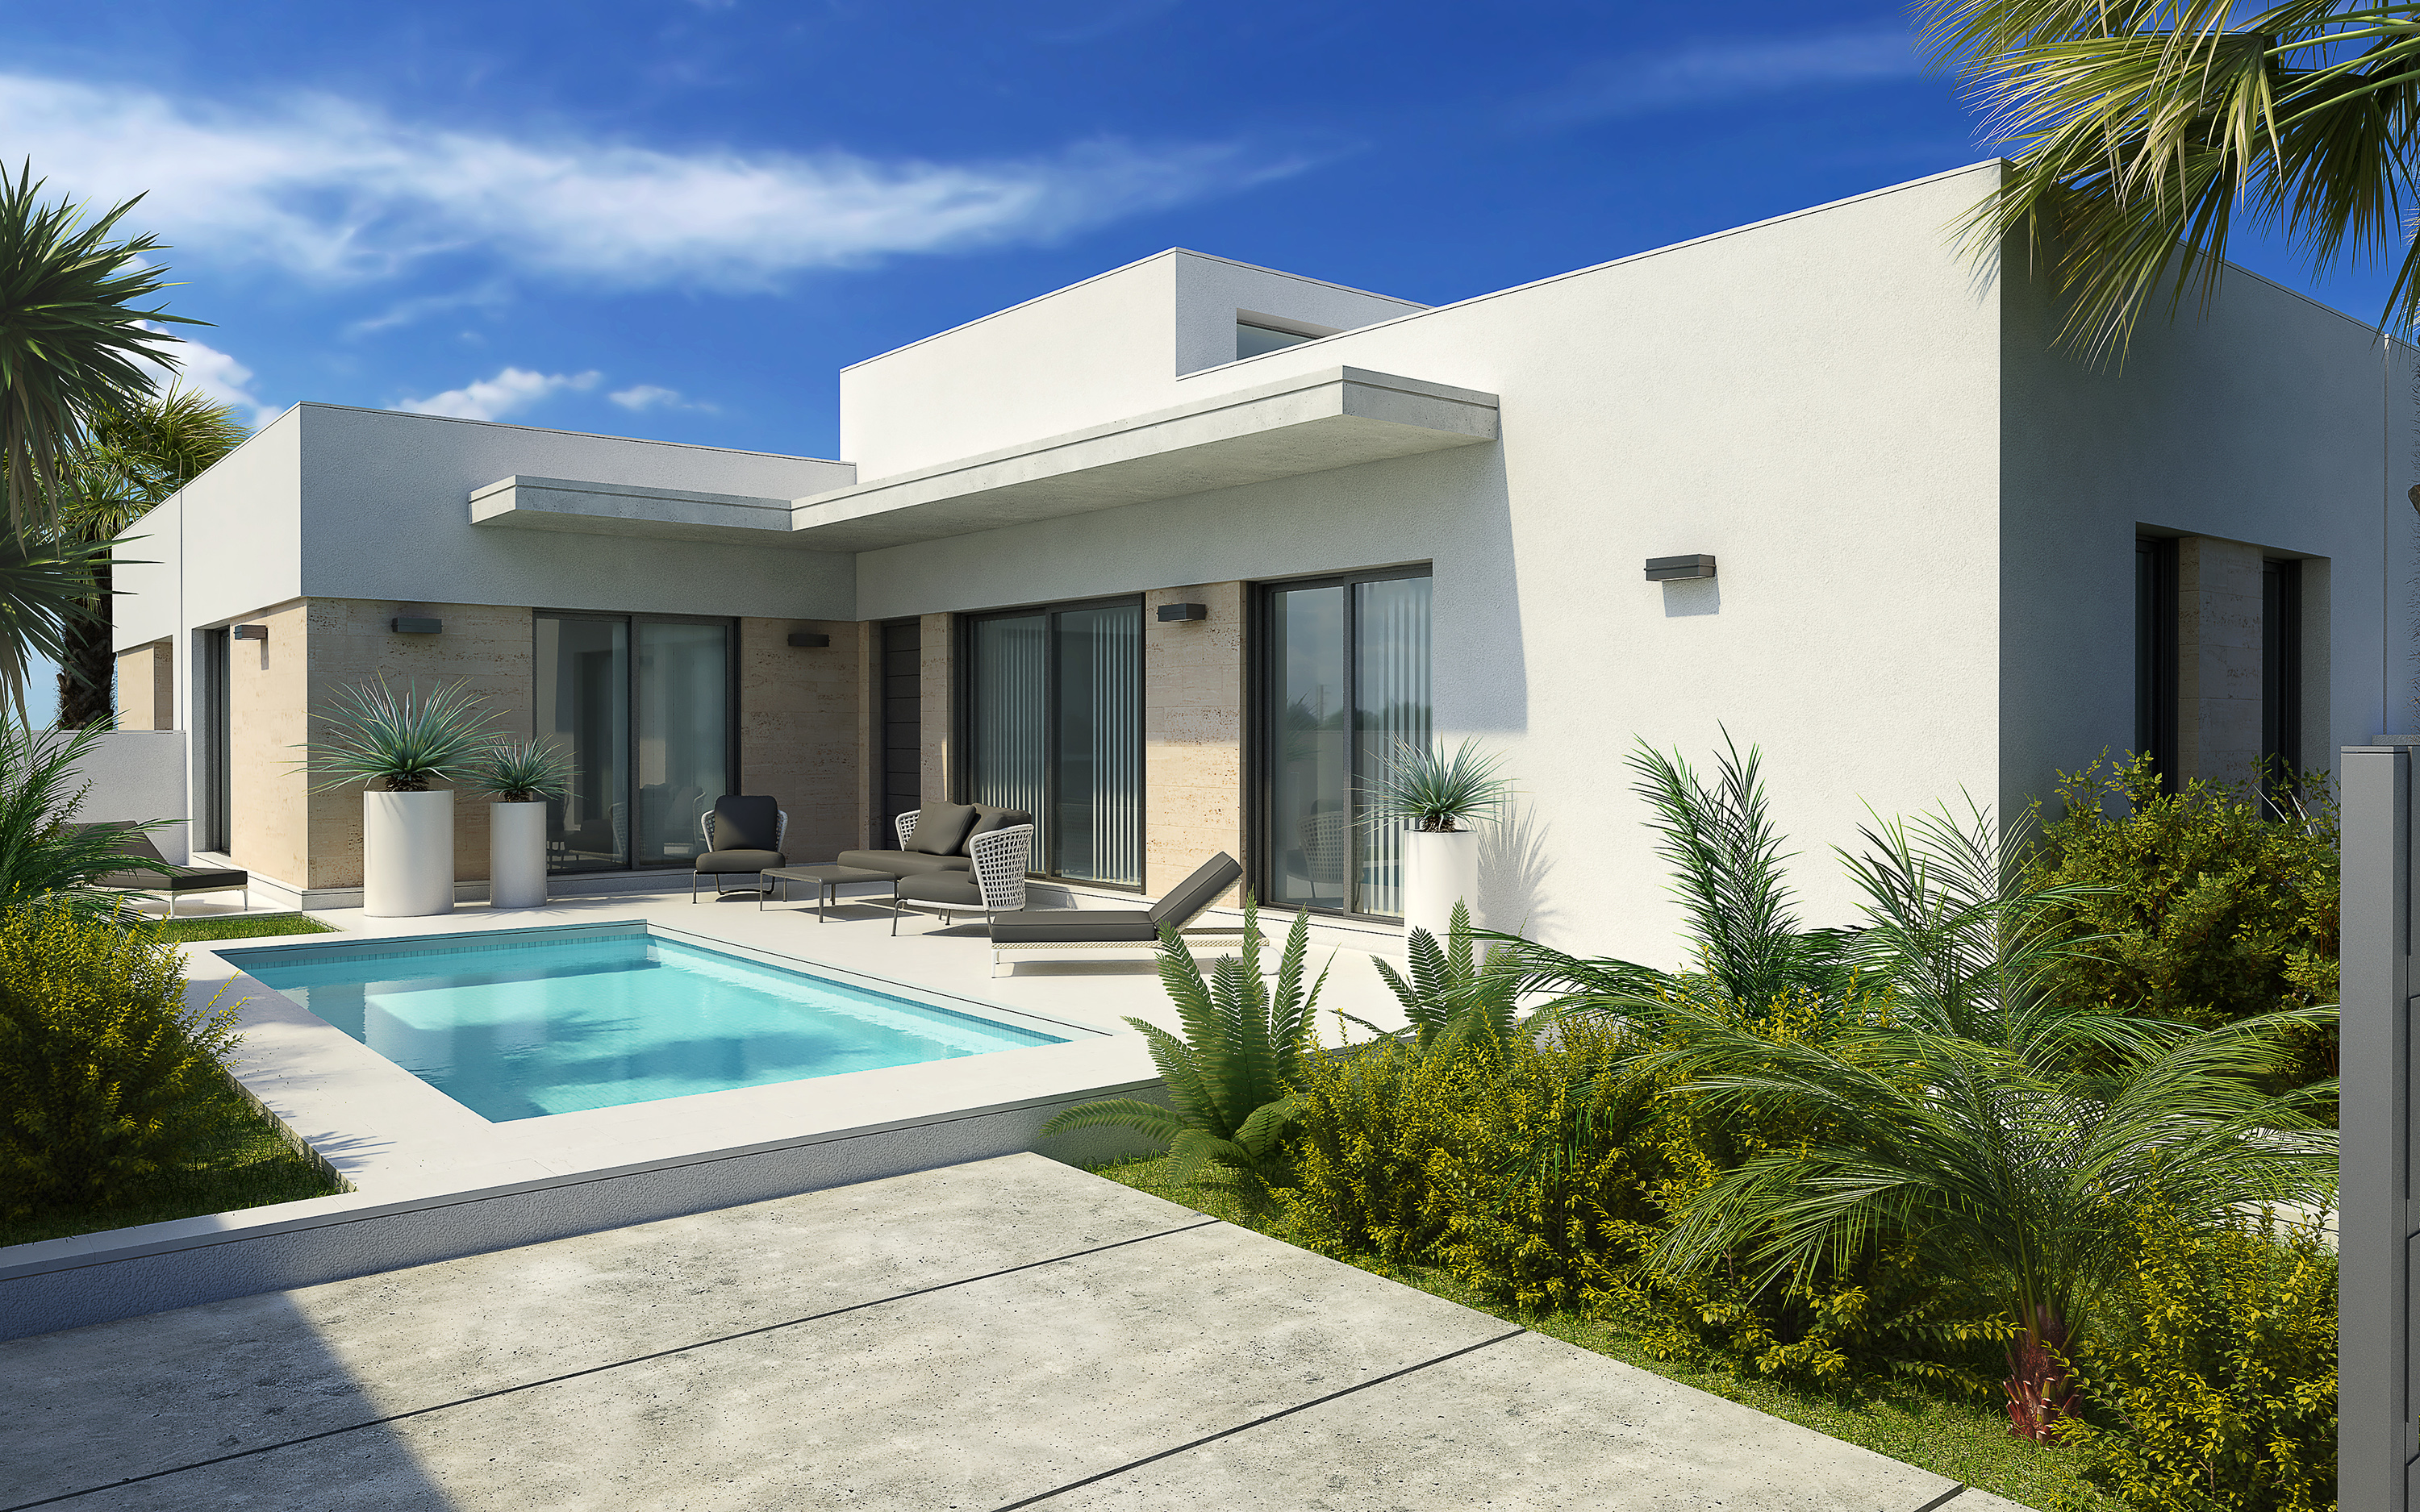 Lovely modern new build villas all one level for sale in a quaint village near the sea, Guardamar.